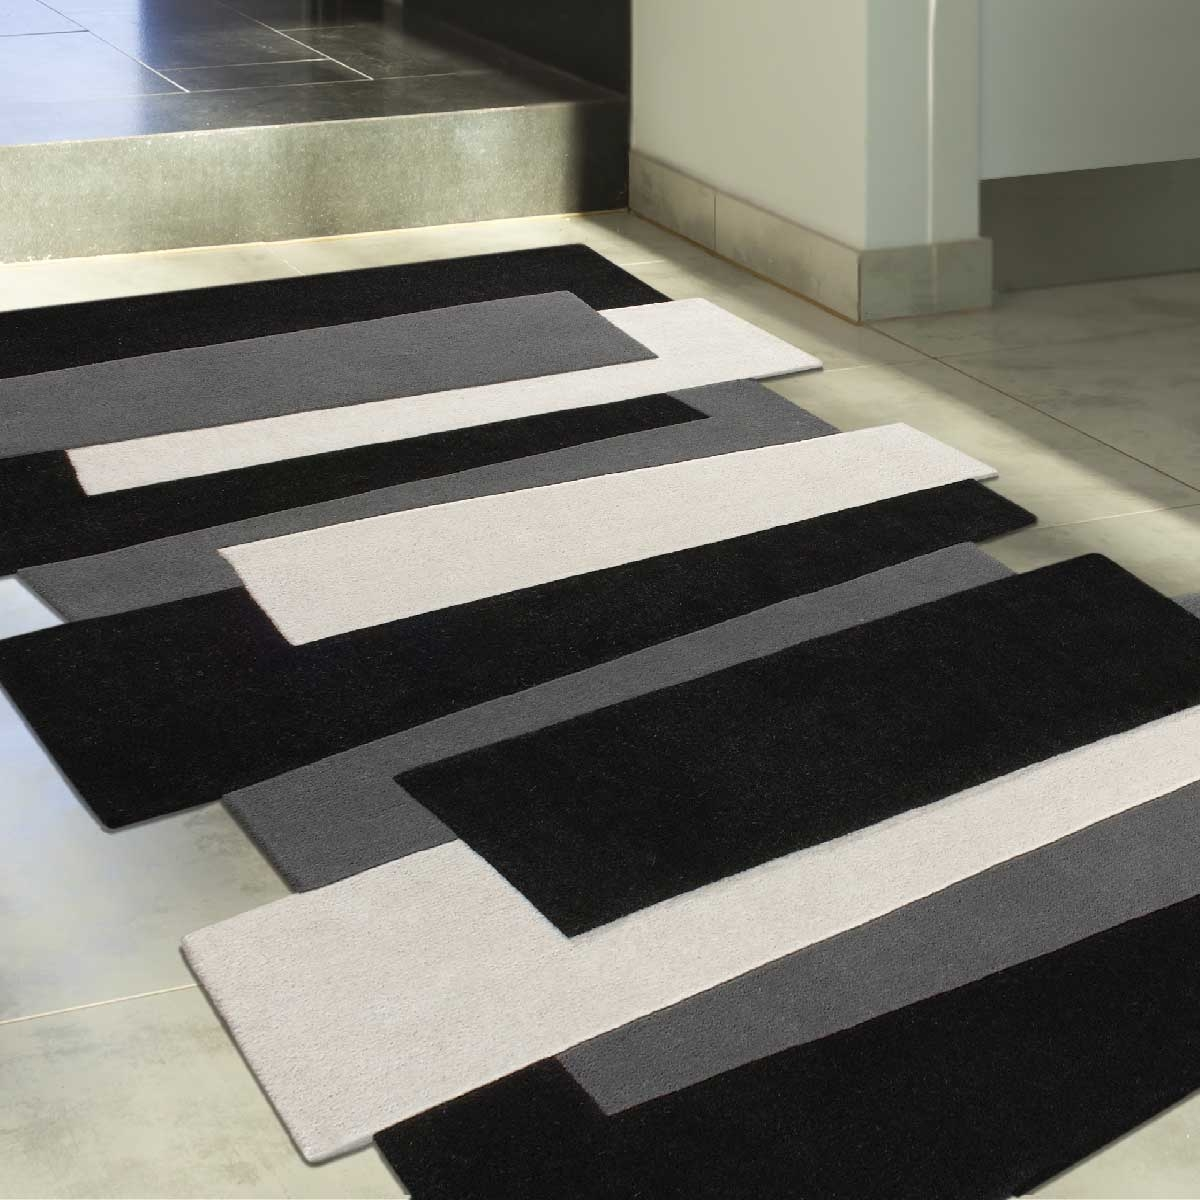 carrelage design tapis ikea grande taille moderne design pour carrelage de sol et rev tement. Black Bedroom Furniture Sets. Home Design Ideas